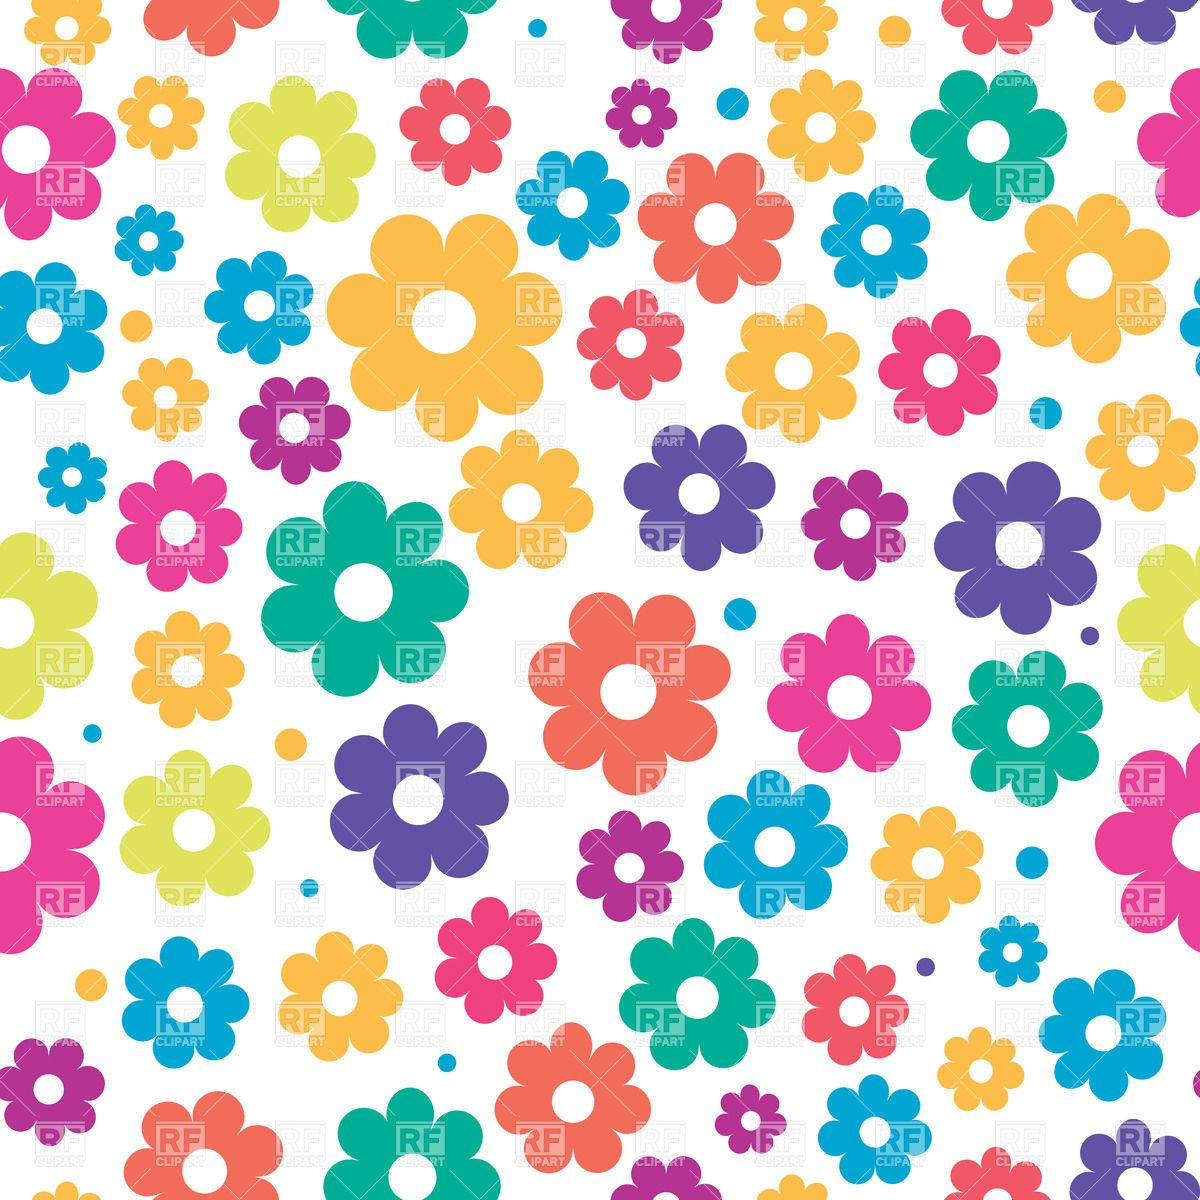 Free Clipart Wallpaper Background Floral Clipart Flower.